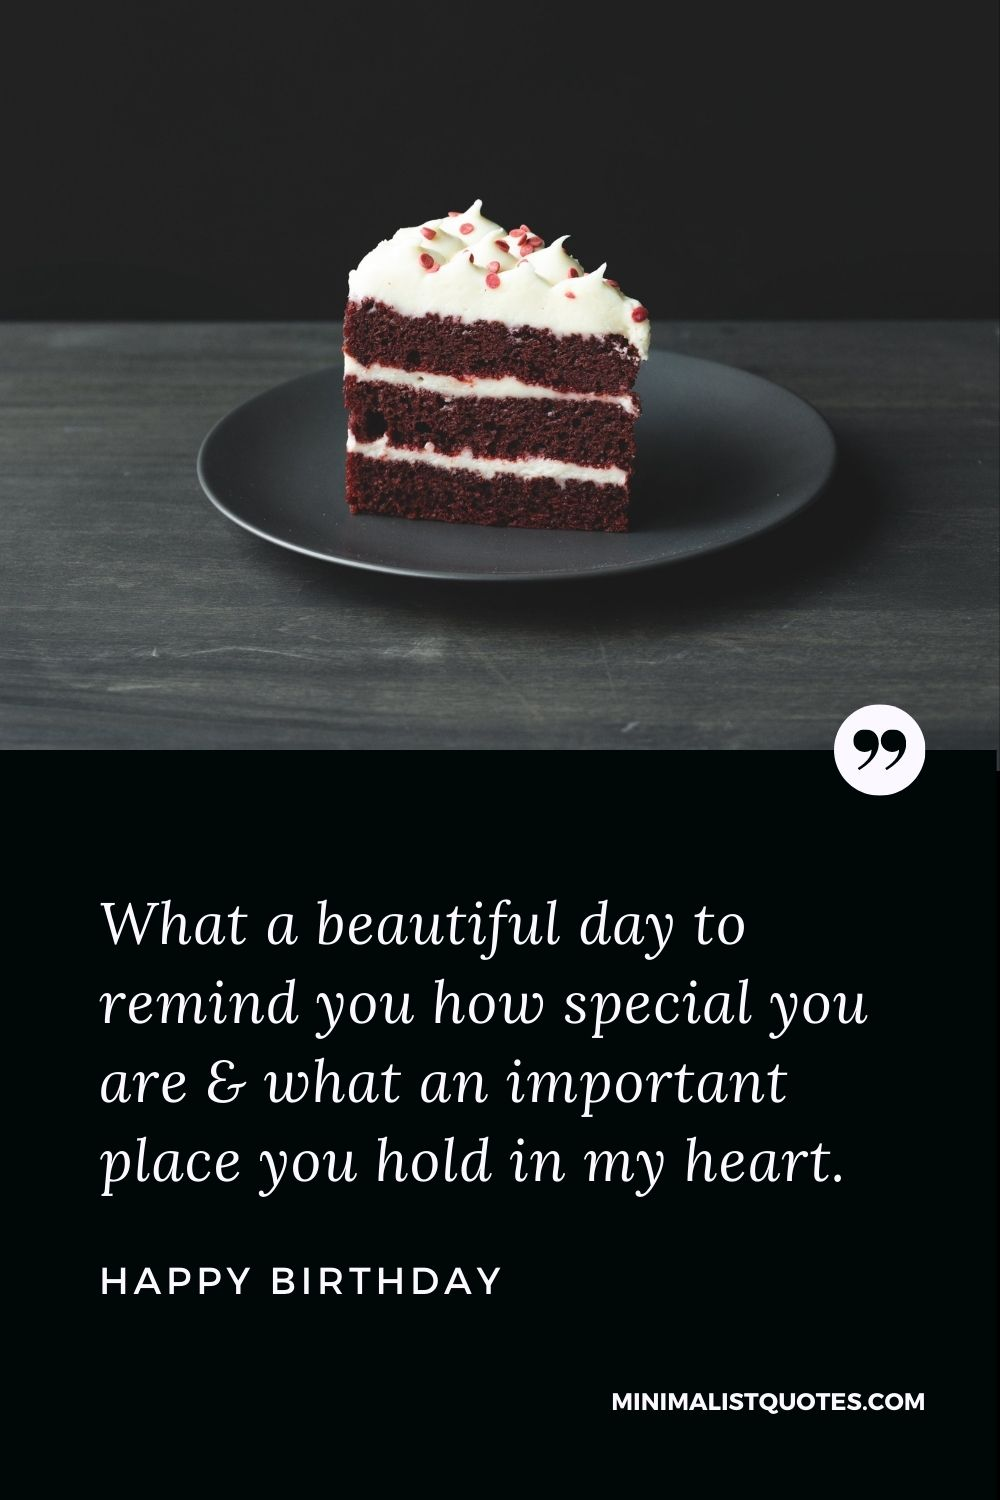 Happy Birthday Wish - What a beautiful dayto remind you how special you are & what an important place you hold in my heart.